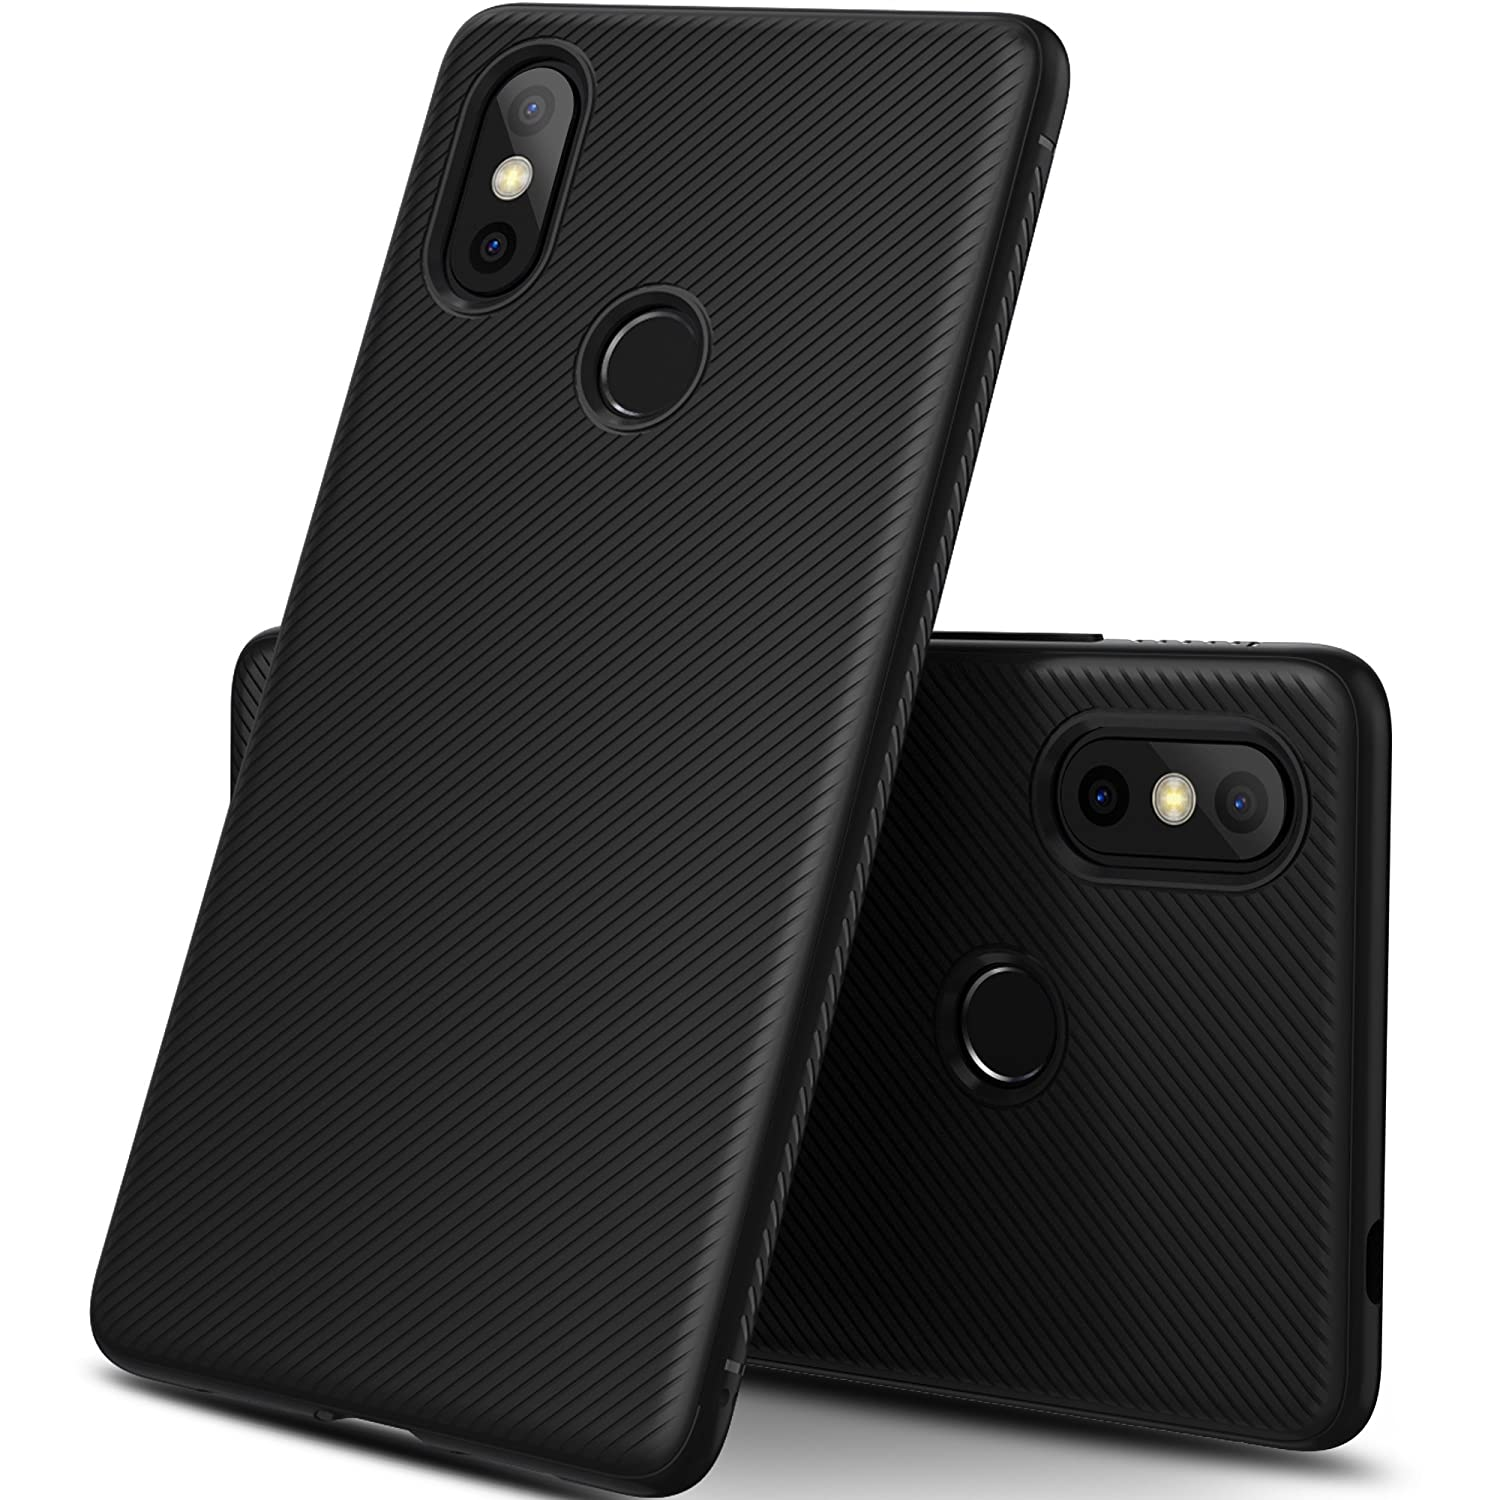 Geemai Xiaomi Mi 8 SE Cover, High Quality Ultra Slim Anti-graffio e Hard Totally Protective Cover per impronte digitali per cover in plastica rigida per smartphone Xiaomi Mi 8 SE. Nero